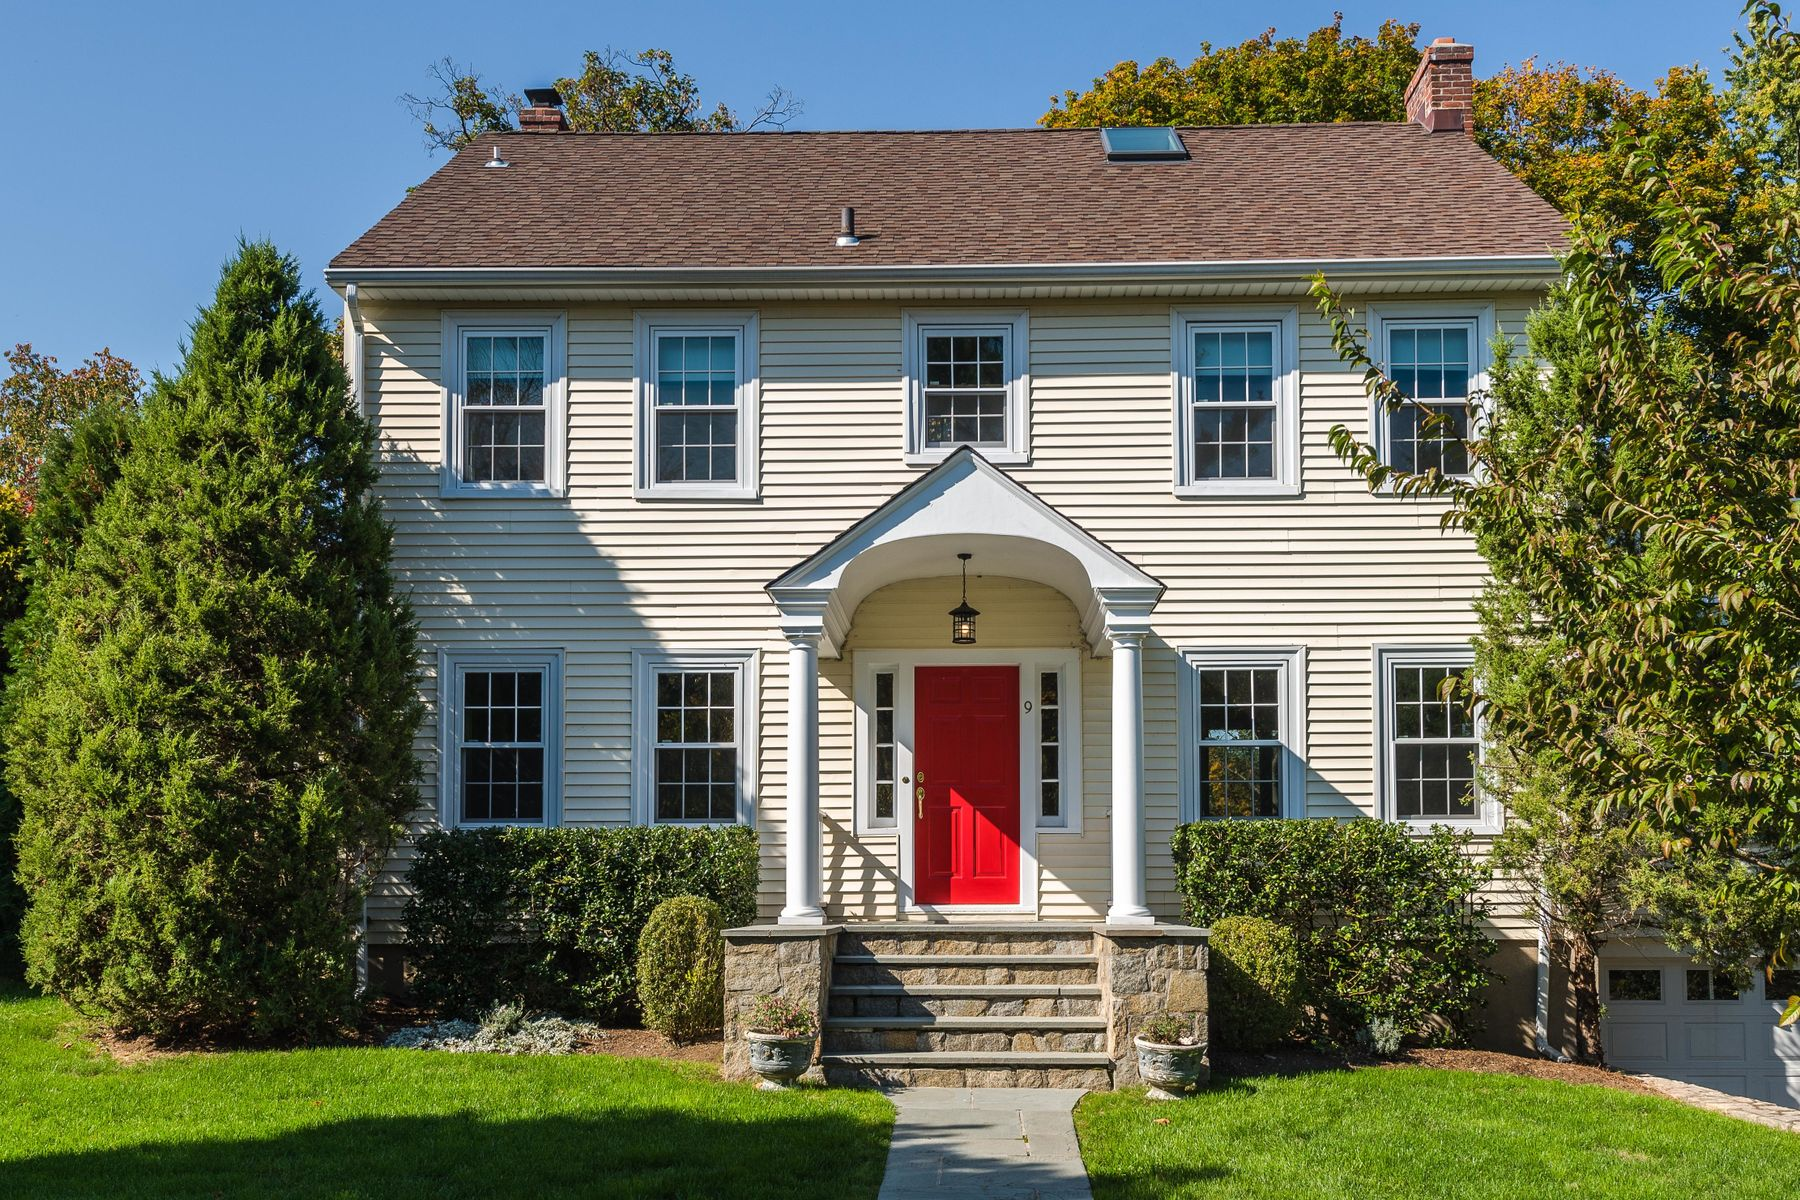 Single Family Home for Sale at 9 Shore Road Old Greenwich, Connecticut 06870 United States